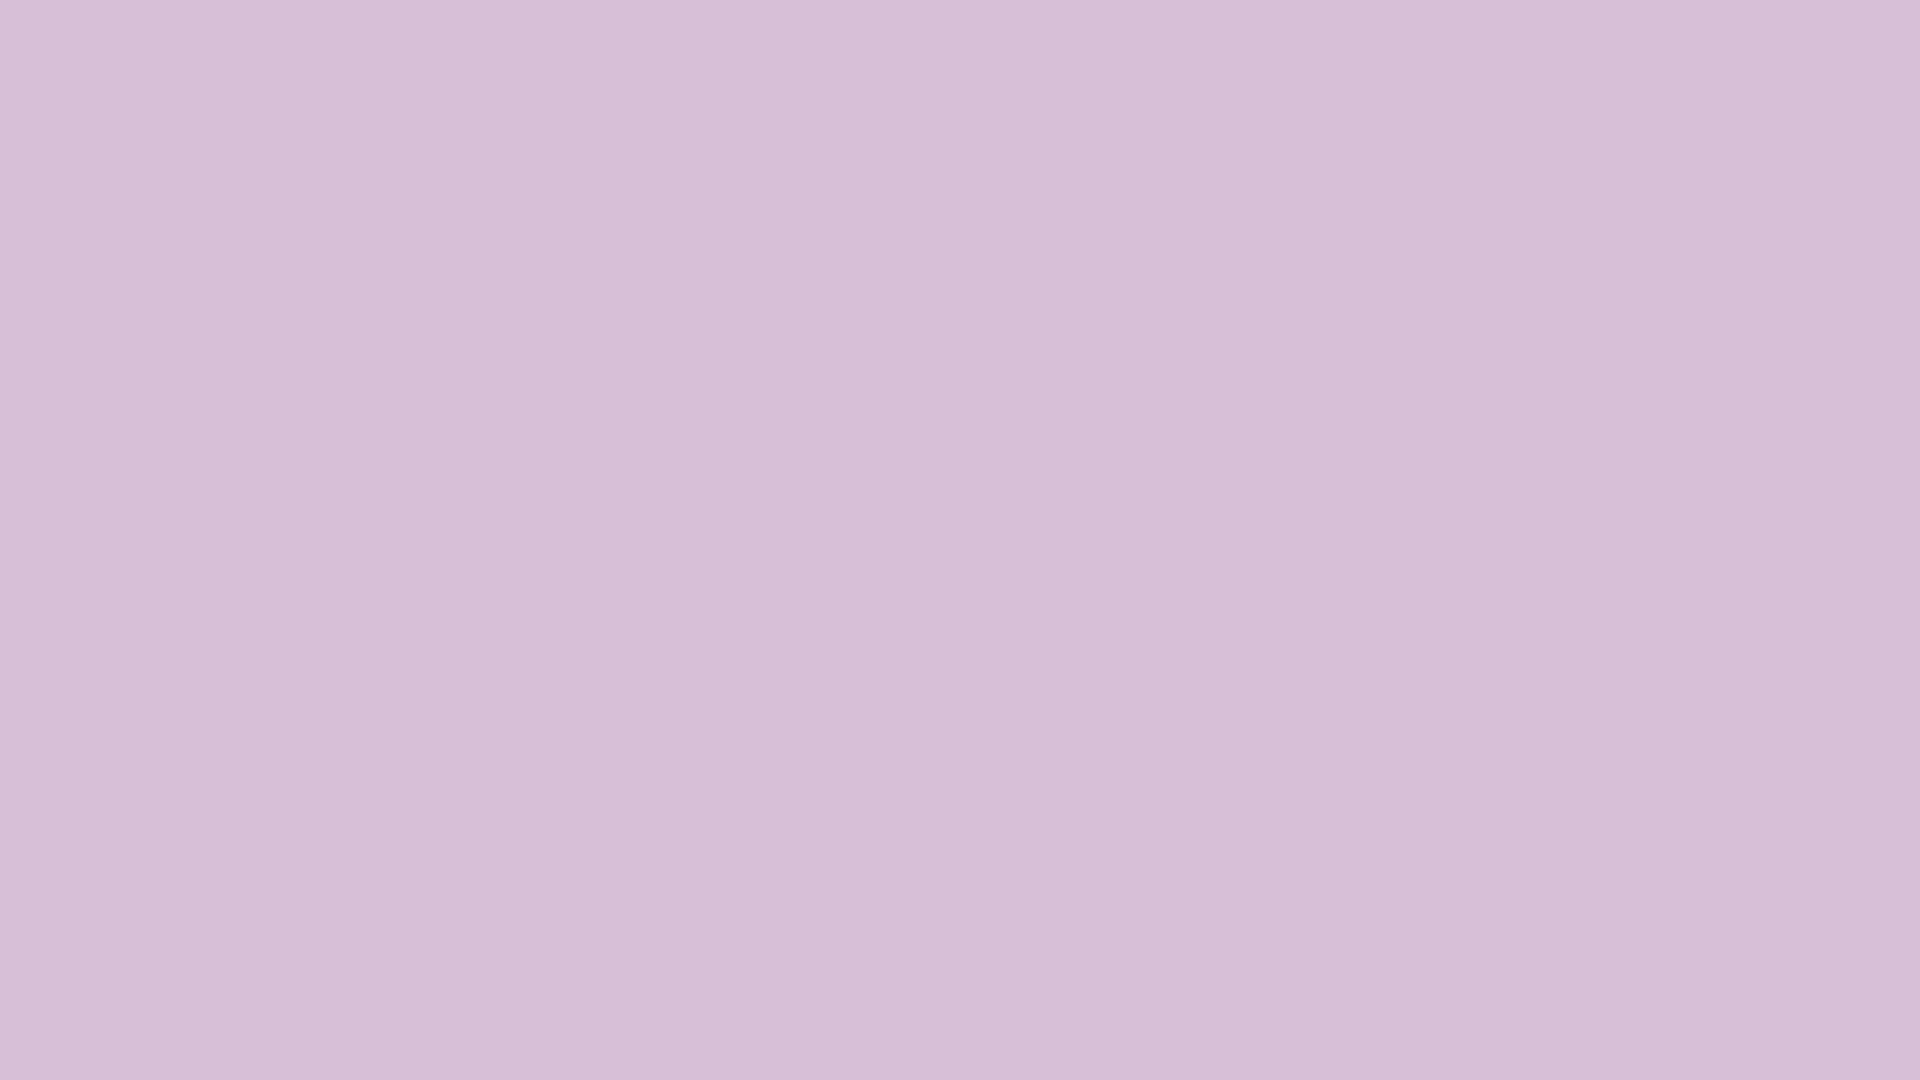 1920x1080 Thistle Solid Color Background